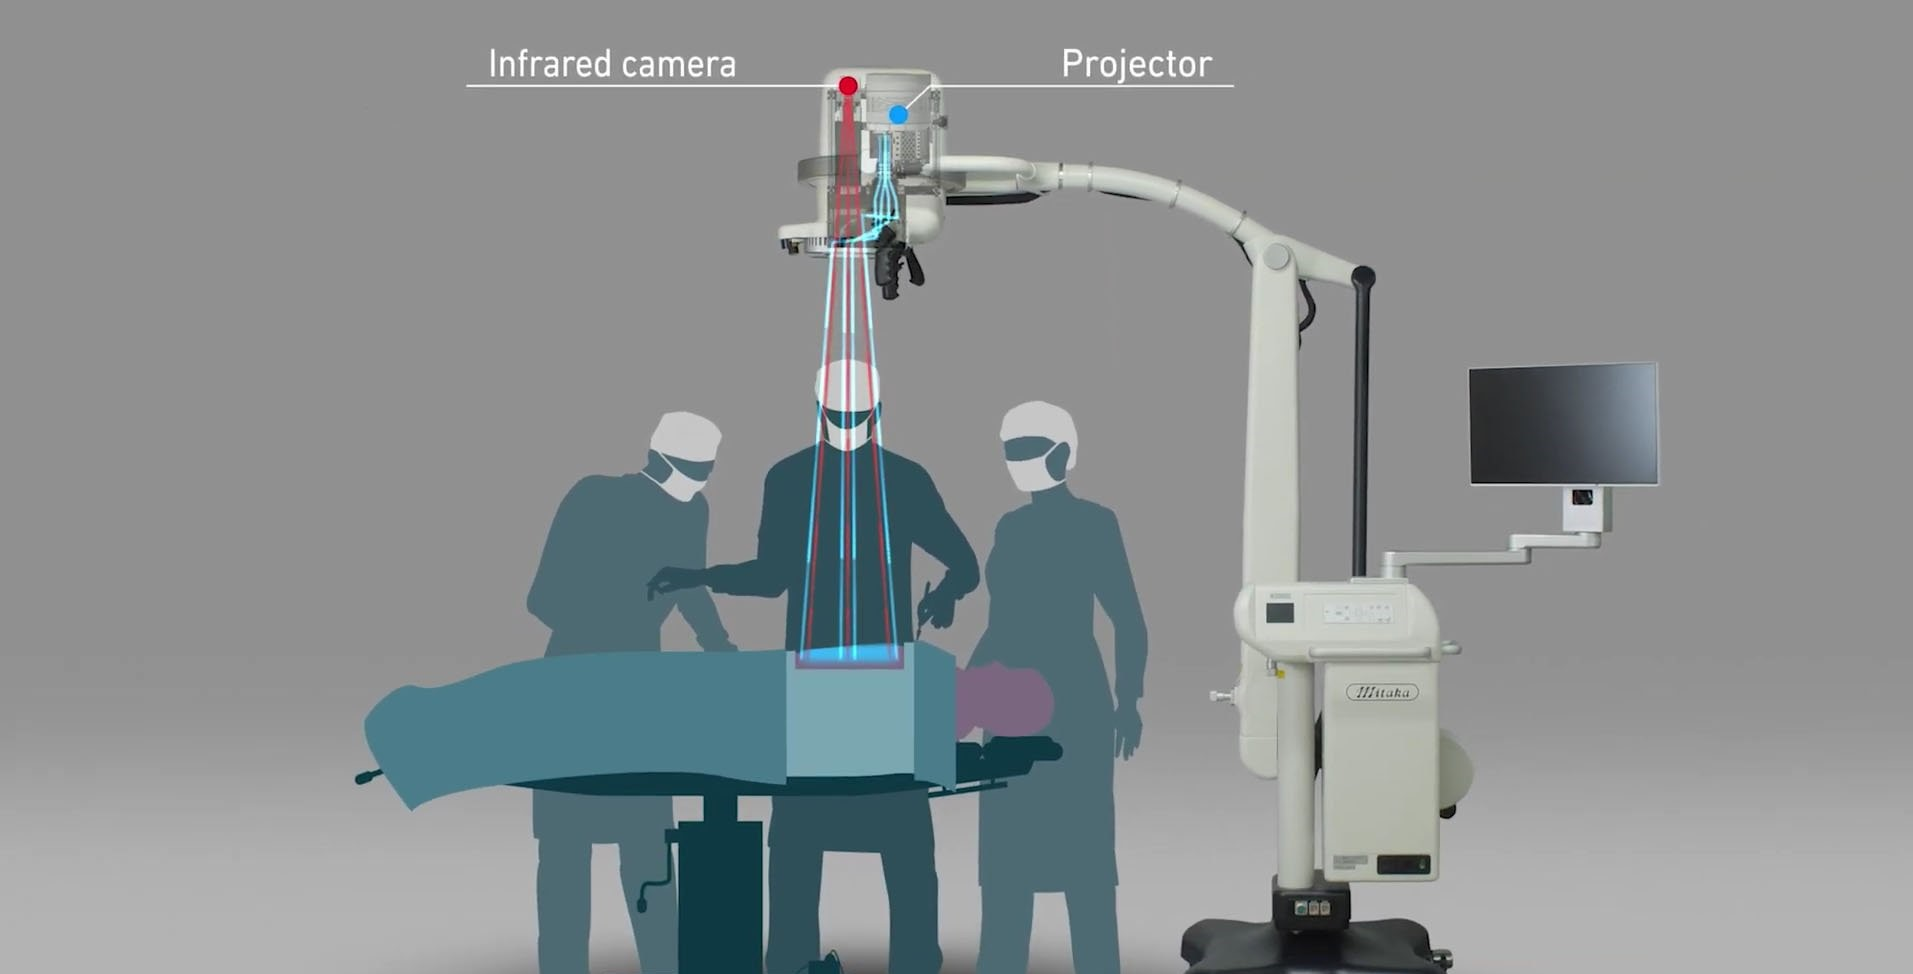 Diagram of the Medical Imaging Projection System (MIPS)